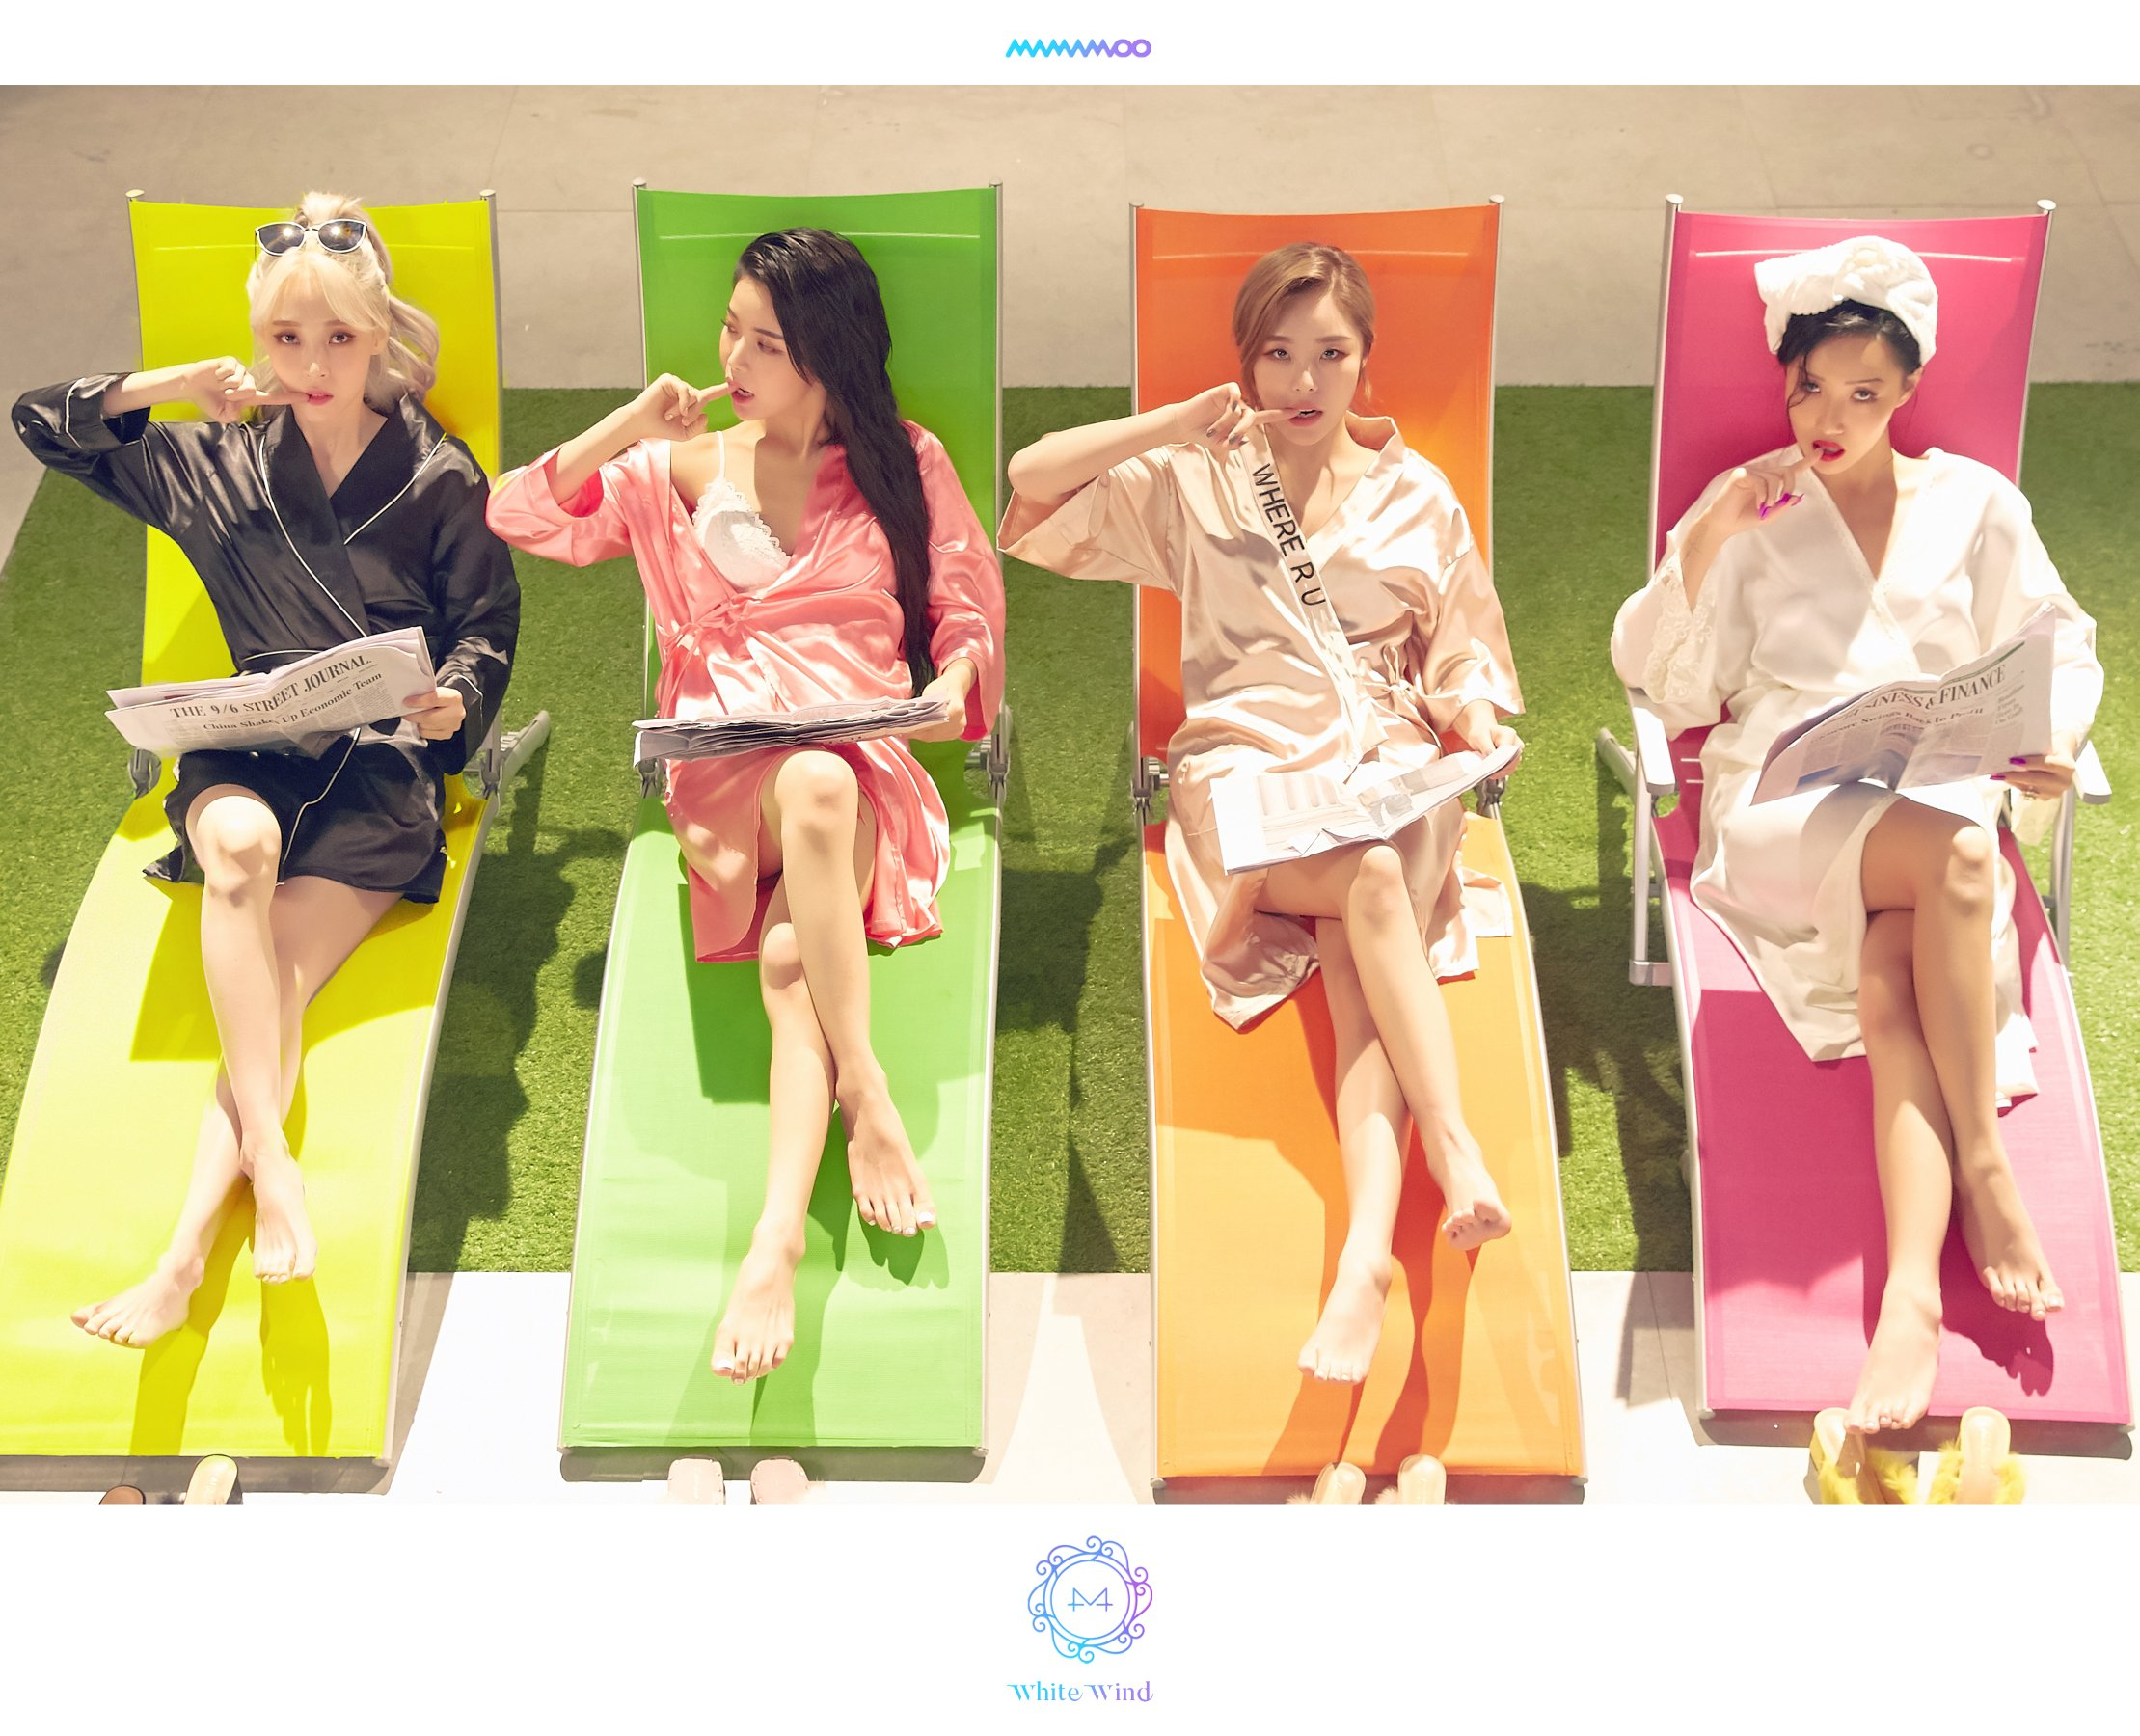 Concept] MAMAMOO - 'WHITE WIND' Group Concept Photo - Celebrity